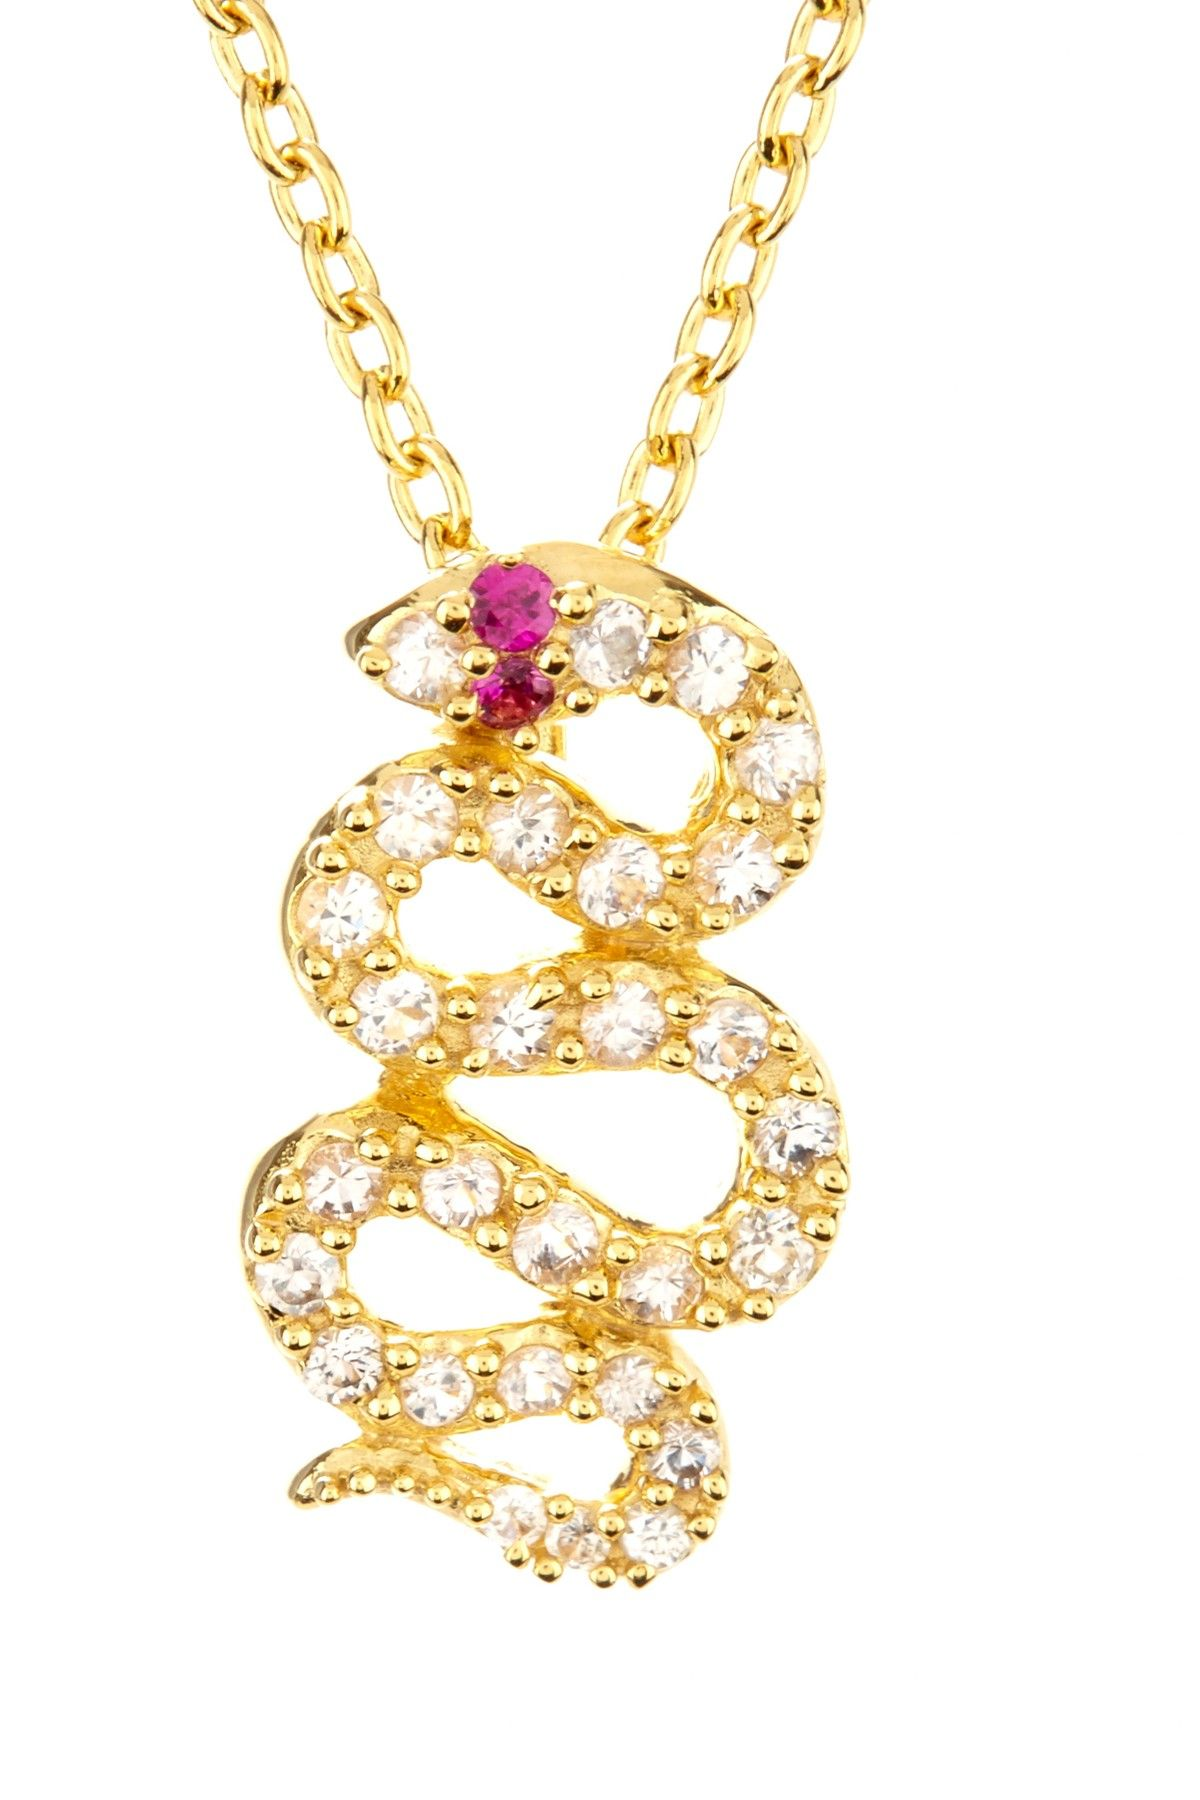 Elizabeth and James White Sapphire & Ruby Gold Snake Pendant Necklace on HauteLook